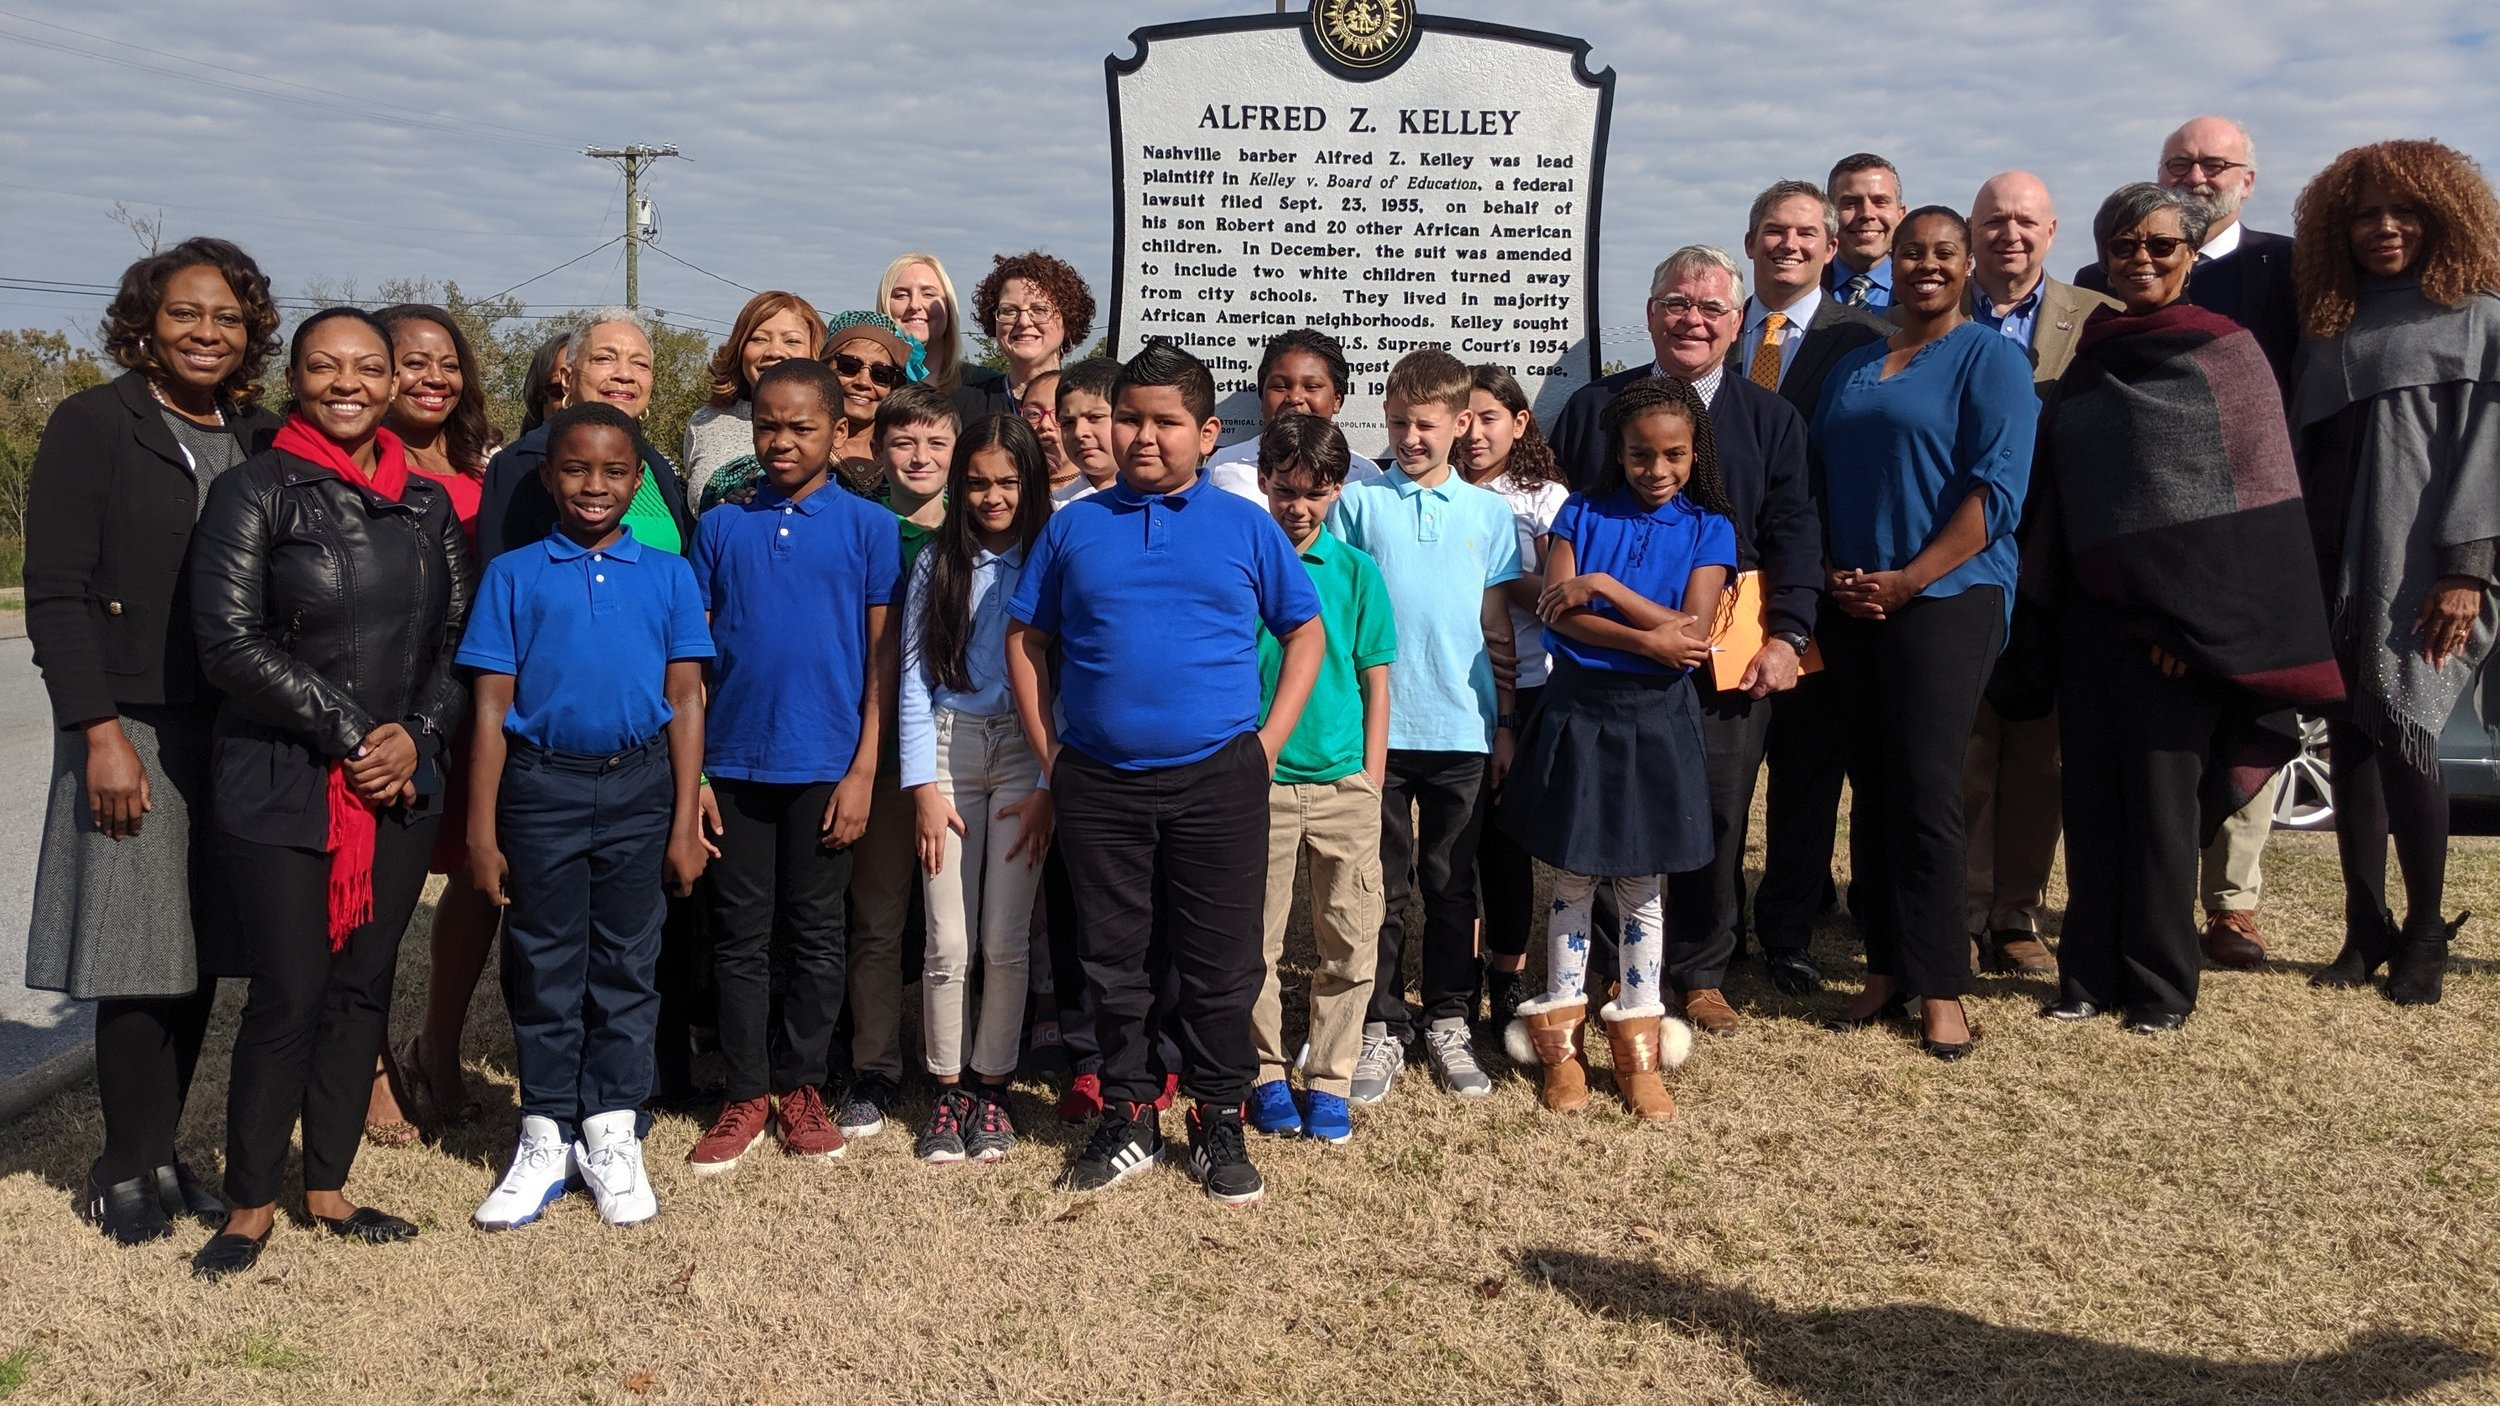 A.Z. Kelley Historical Marker Unveiled